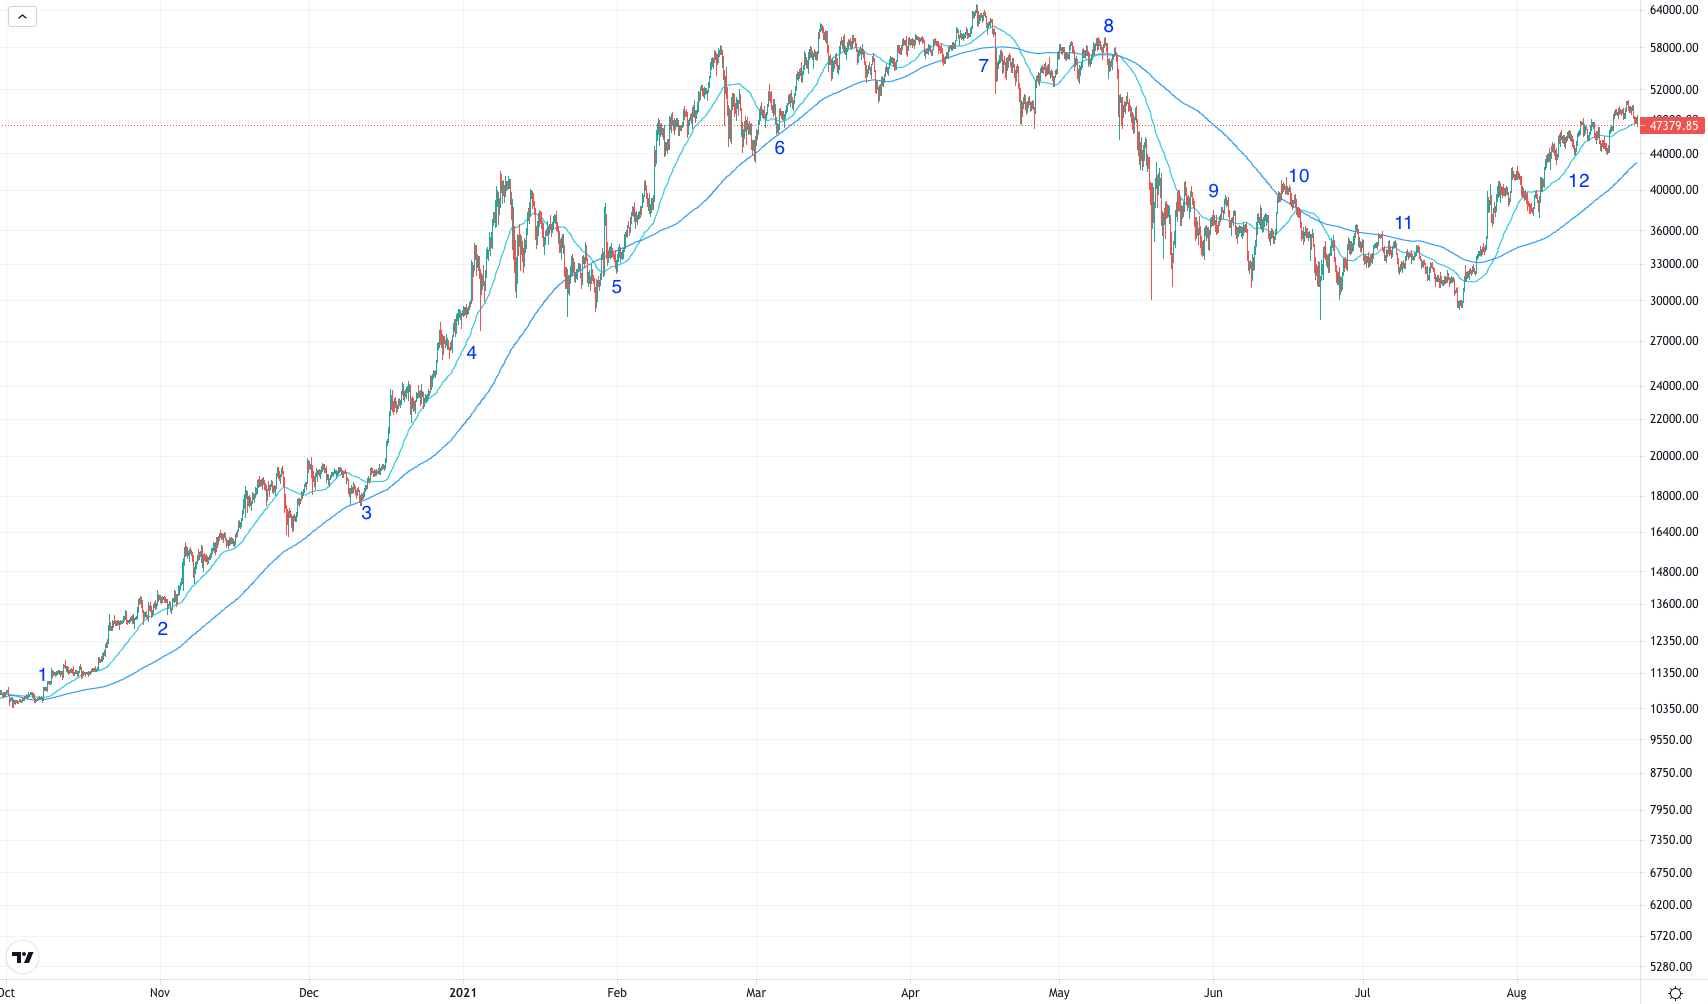 4-hour bitcoin chart with moving averages